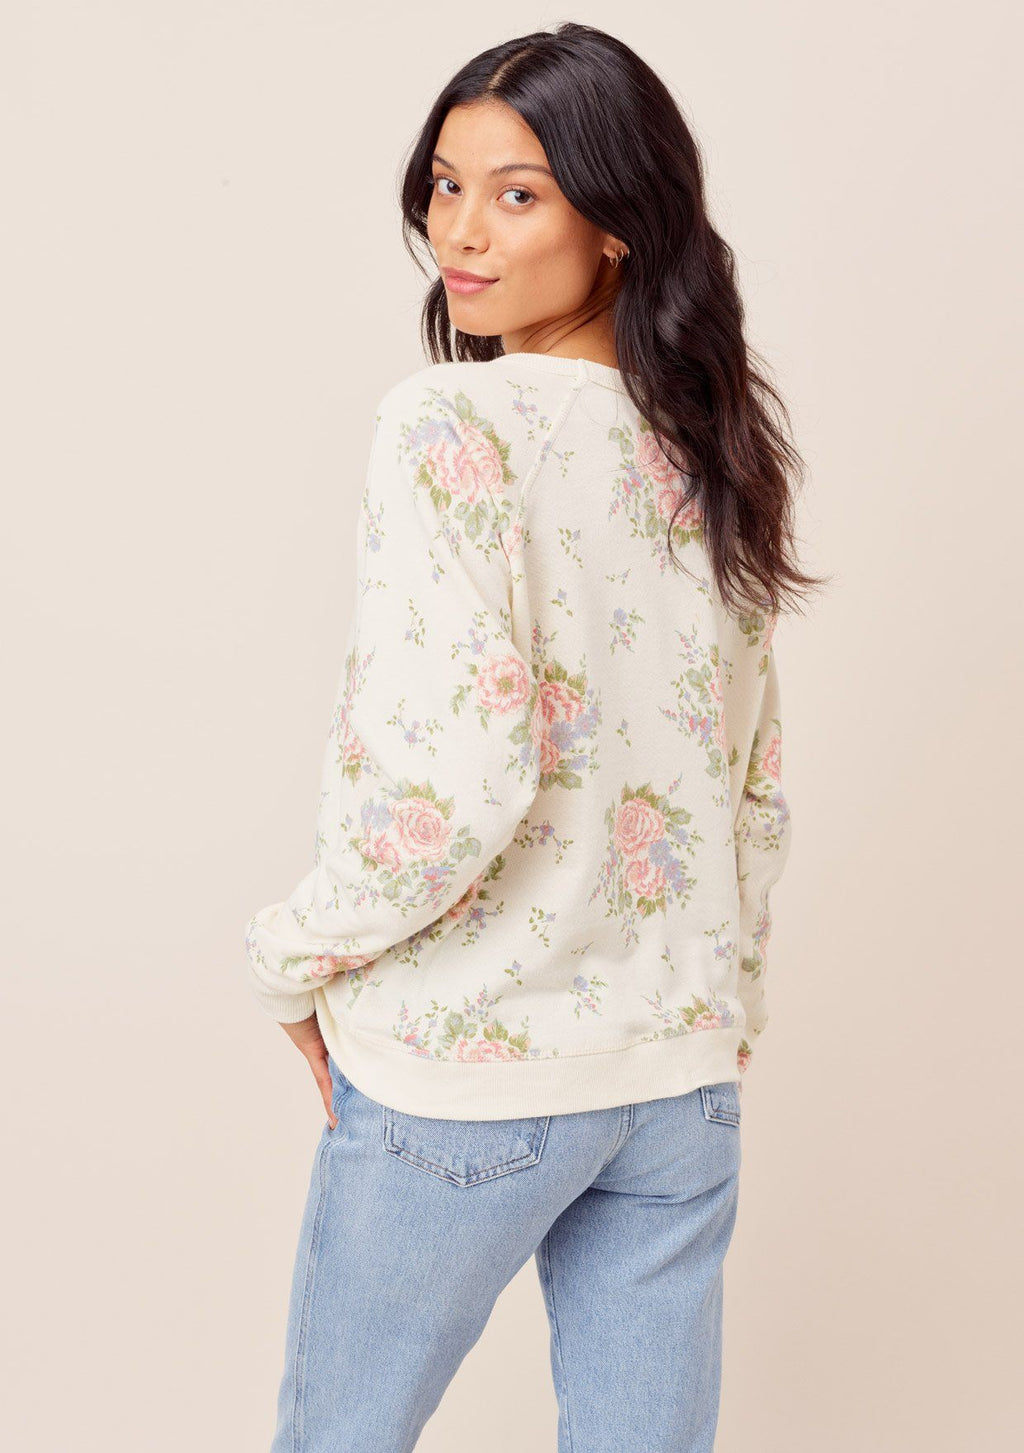 Floral Crew Neck Sweatshirt - honey